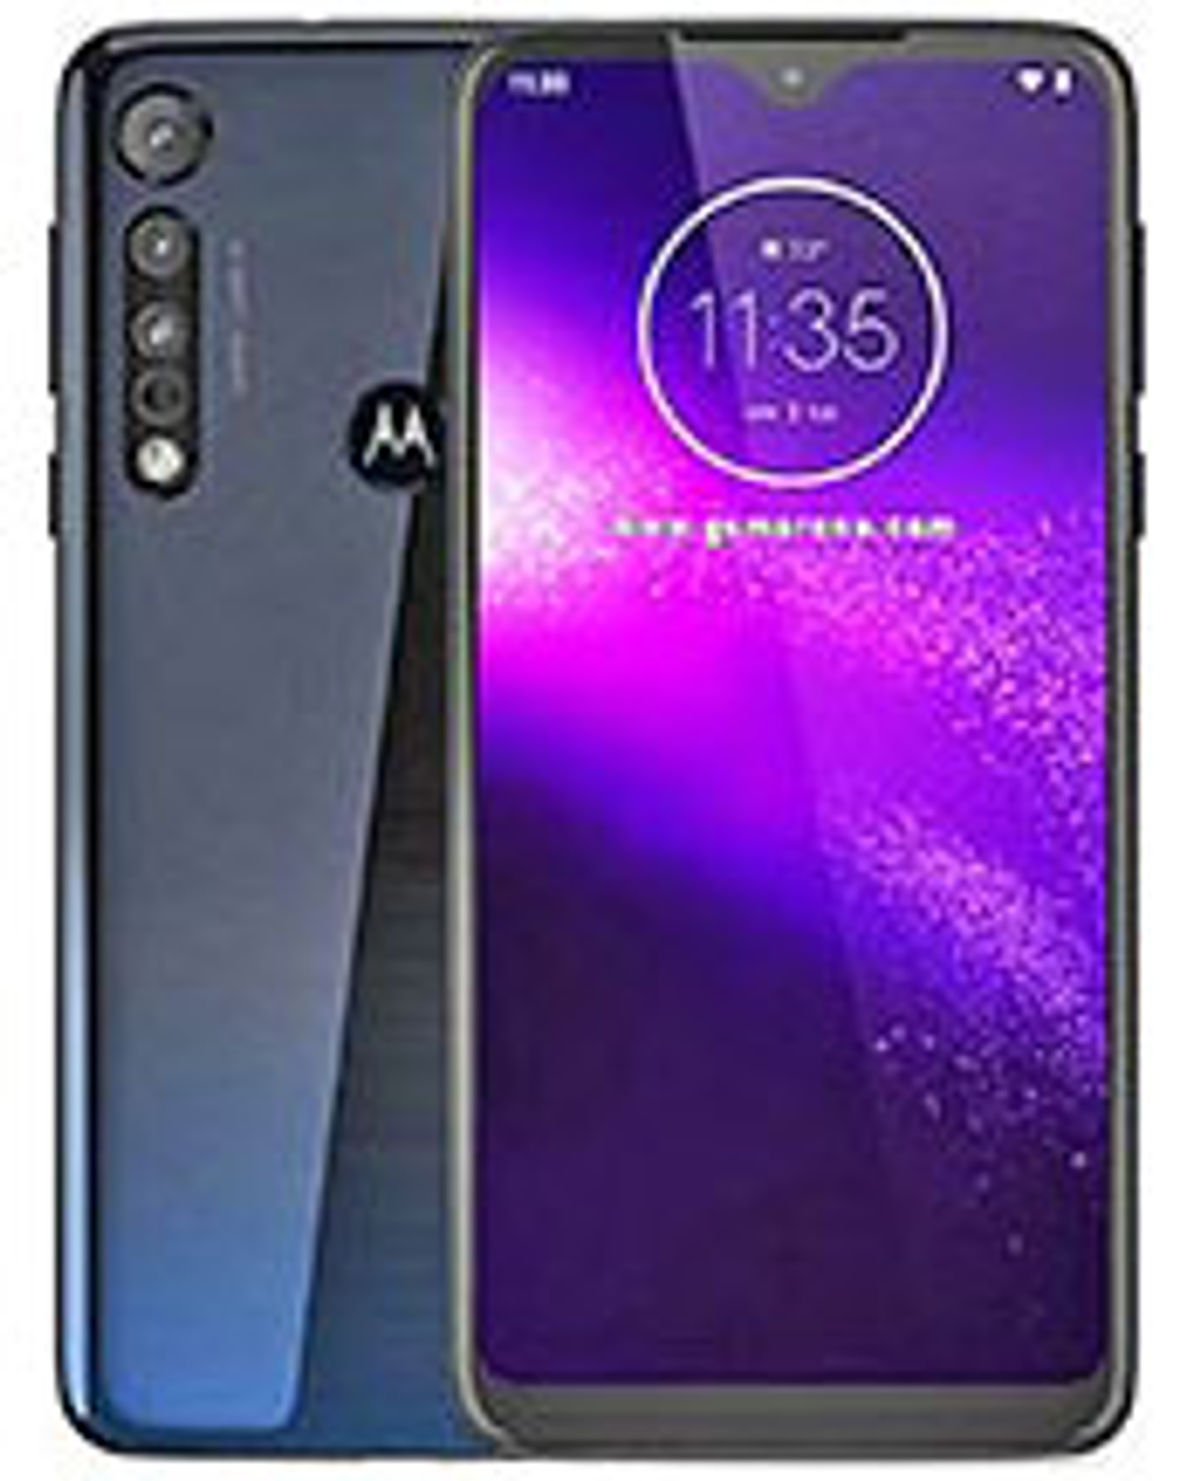 Best Mobile Phones Under 10000 In India With Price And Specs 23